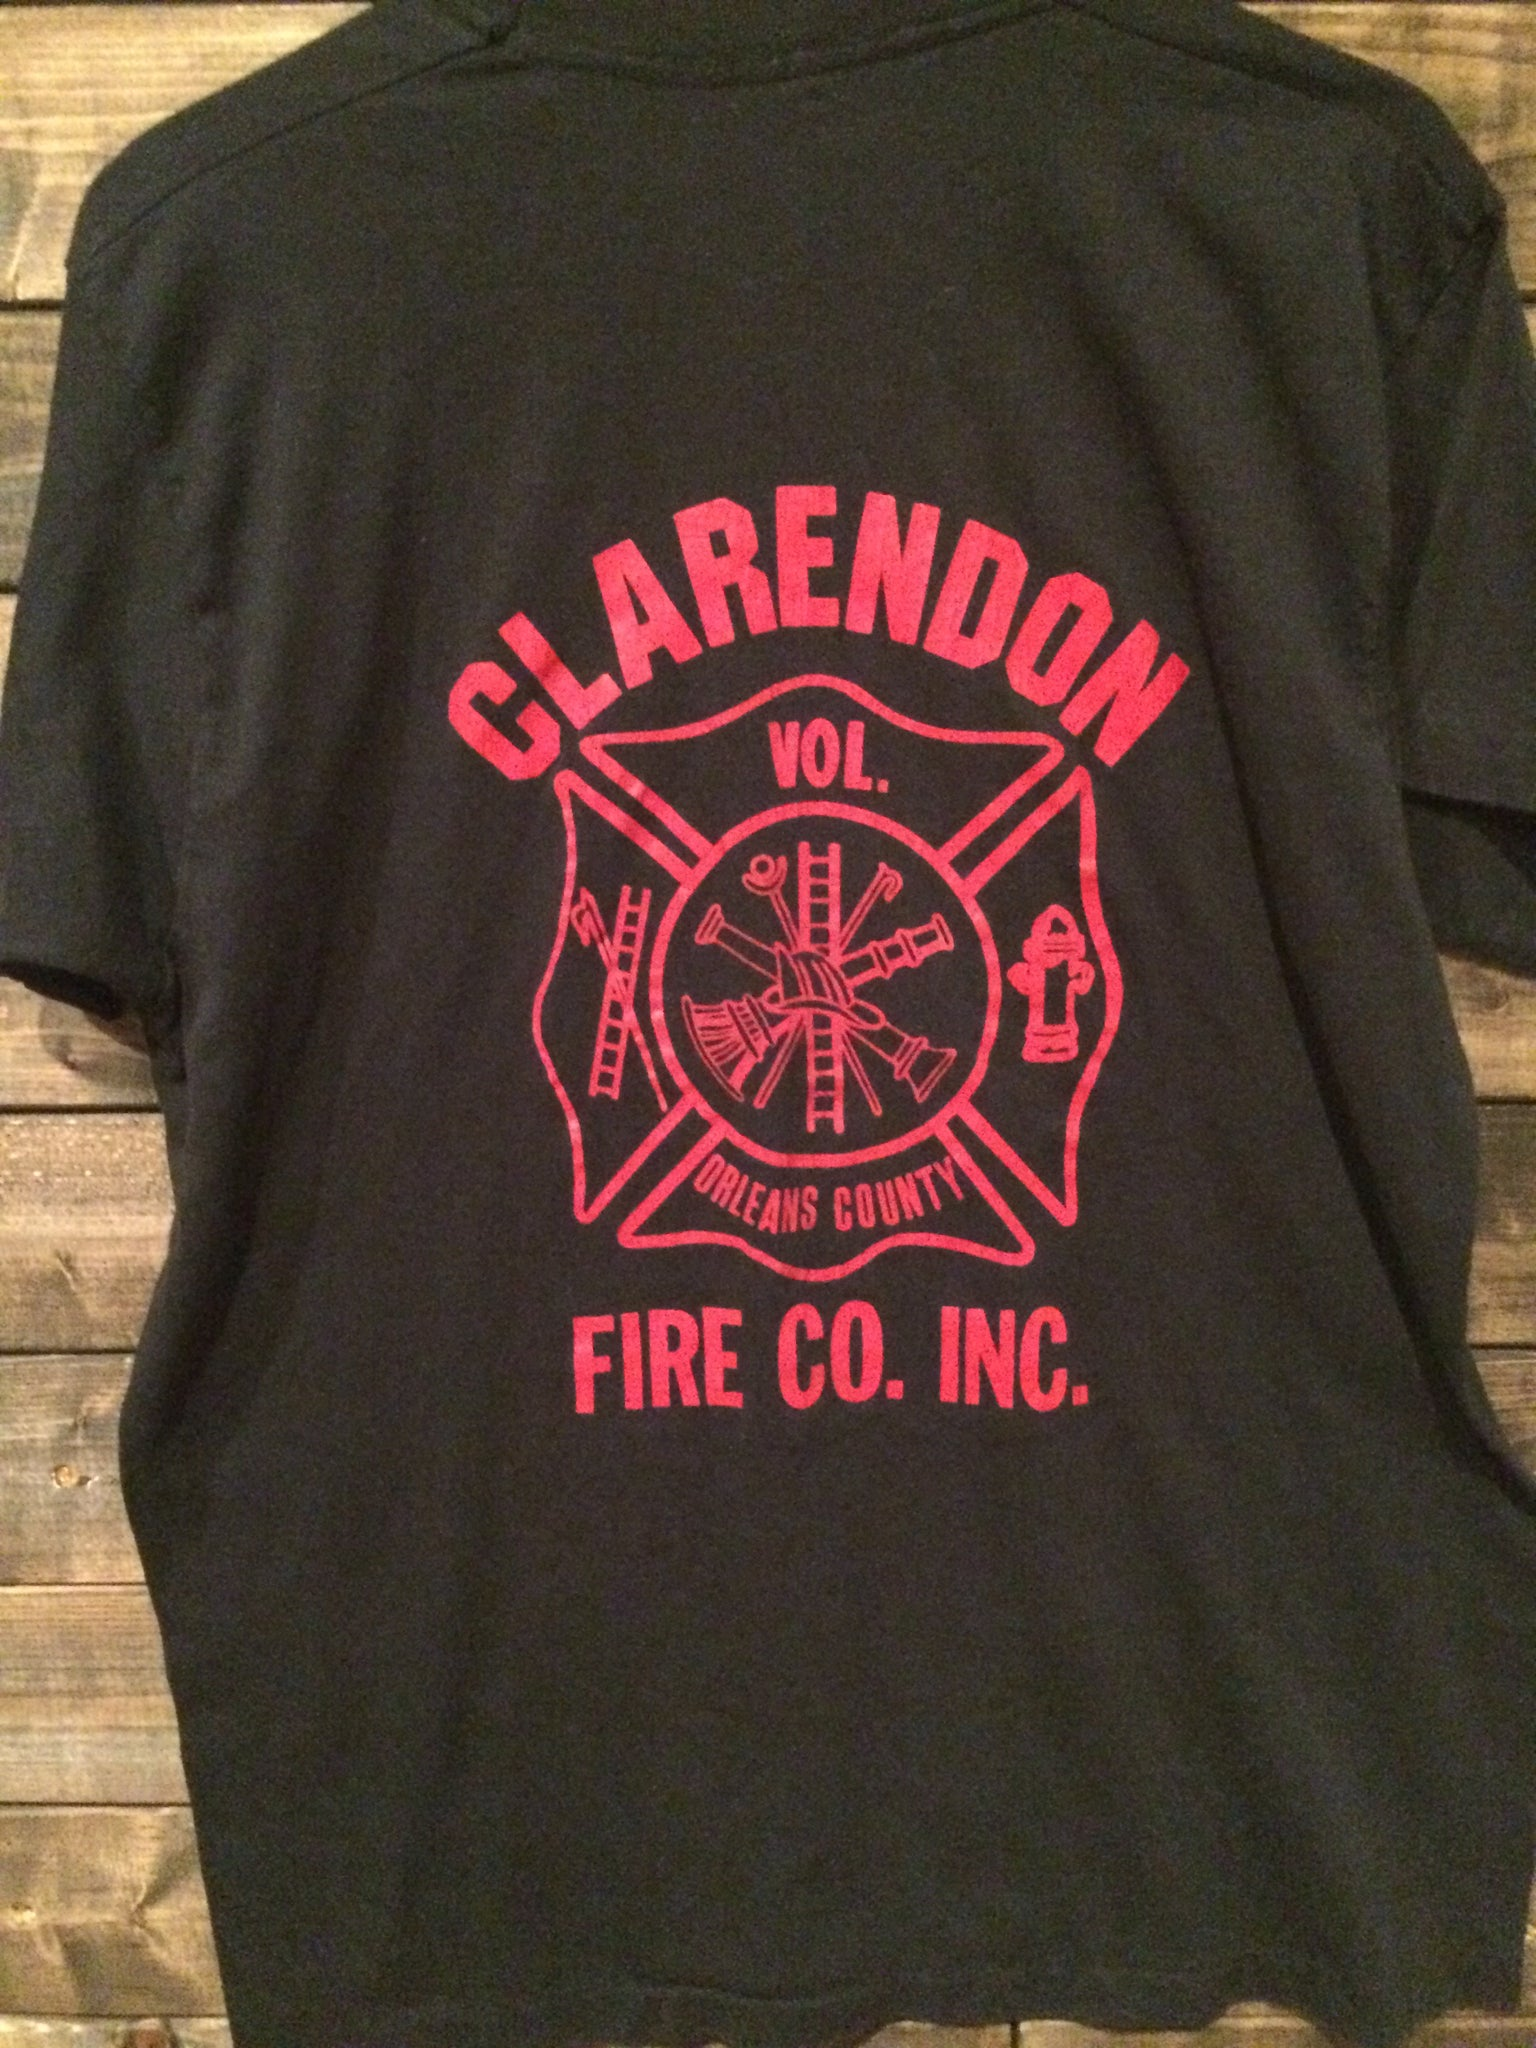 80's Clarendon, NY Fire Dept. Tee